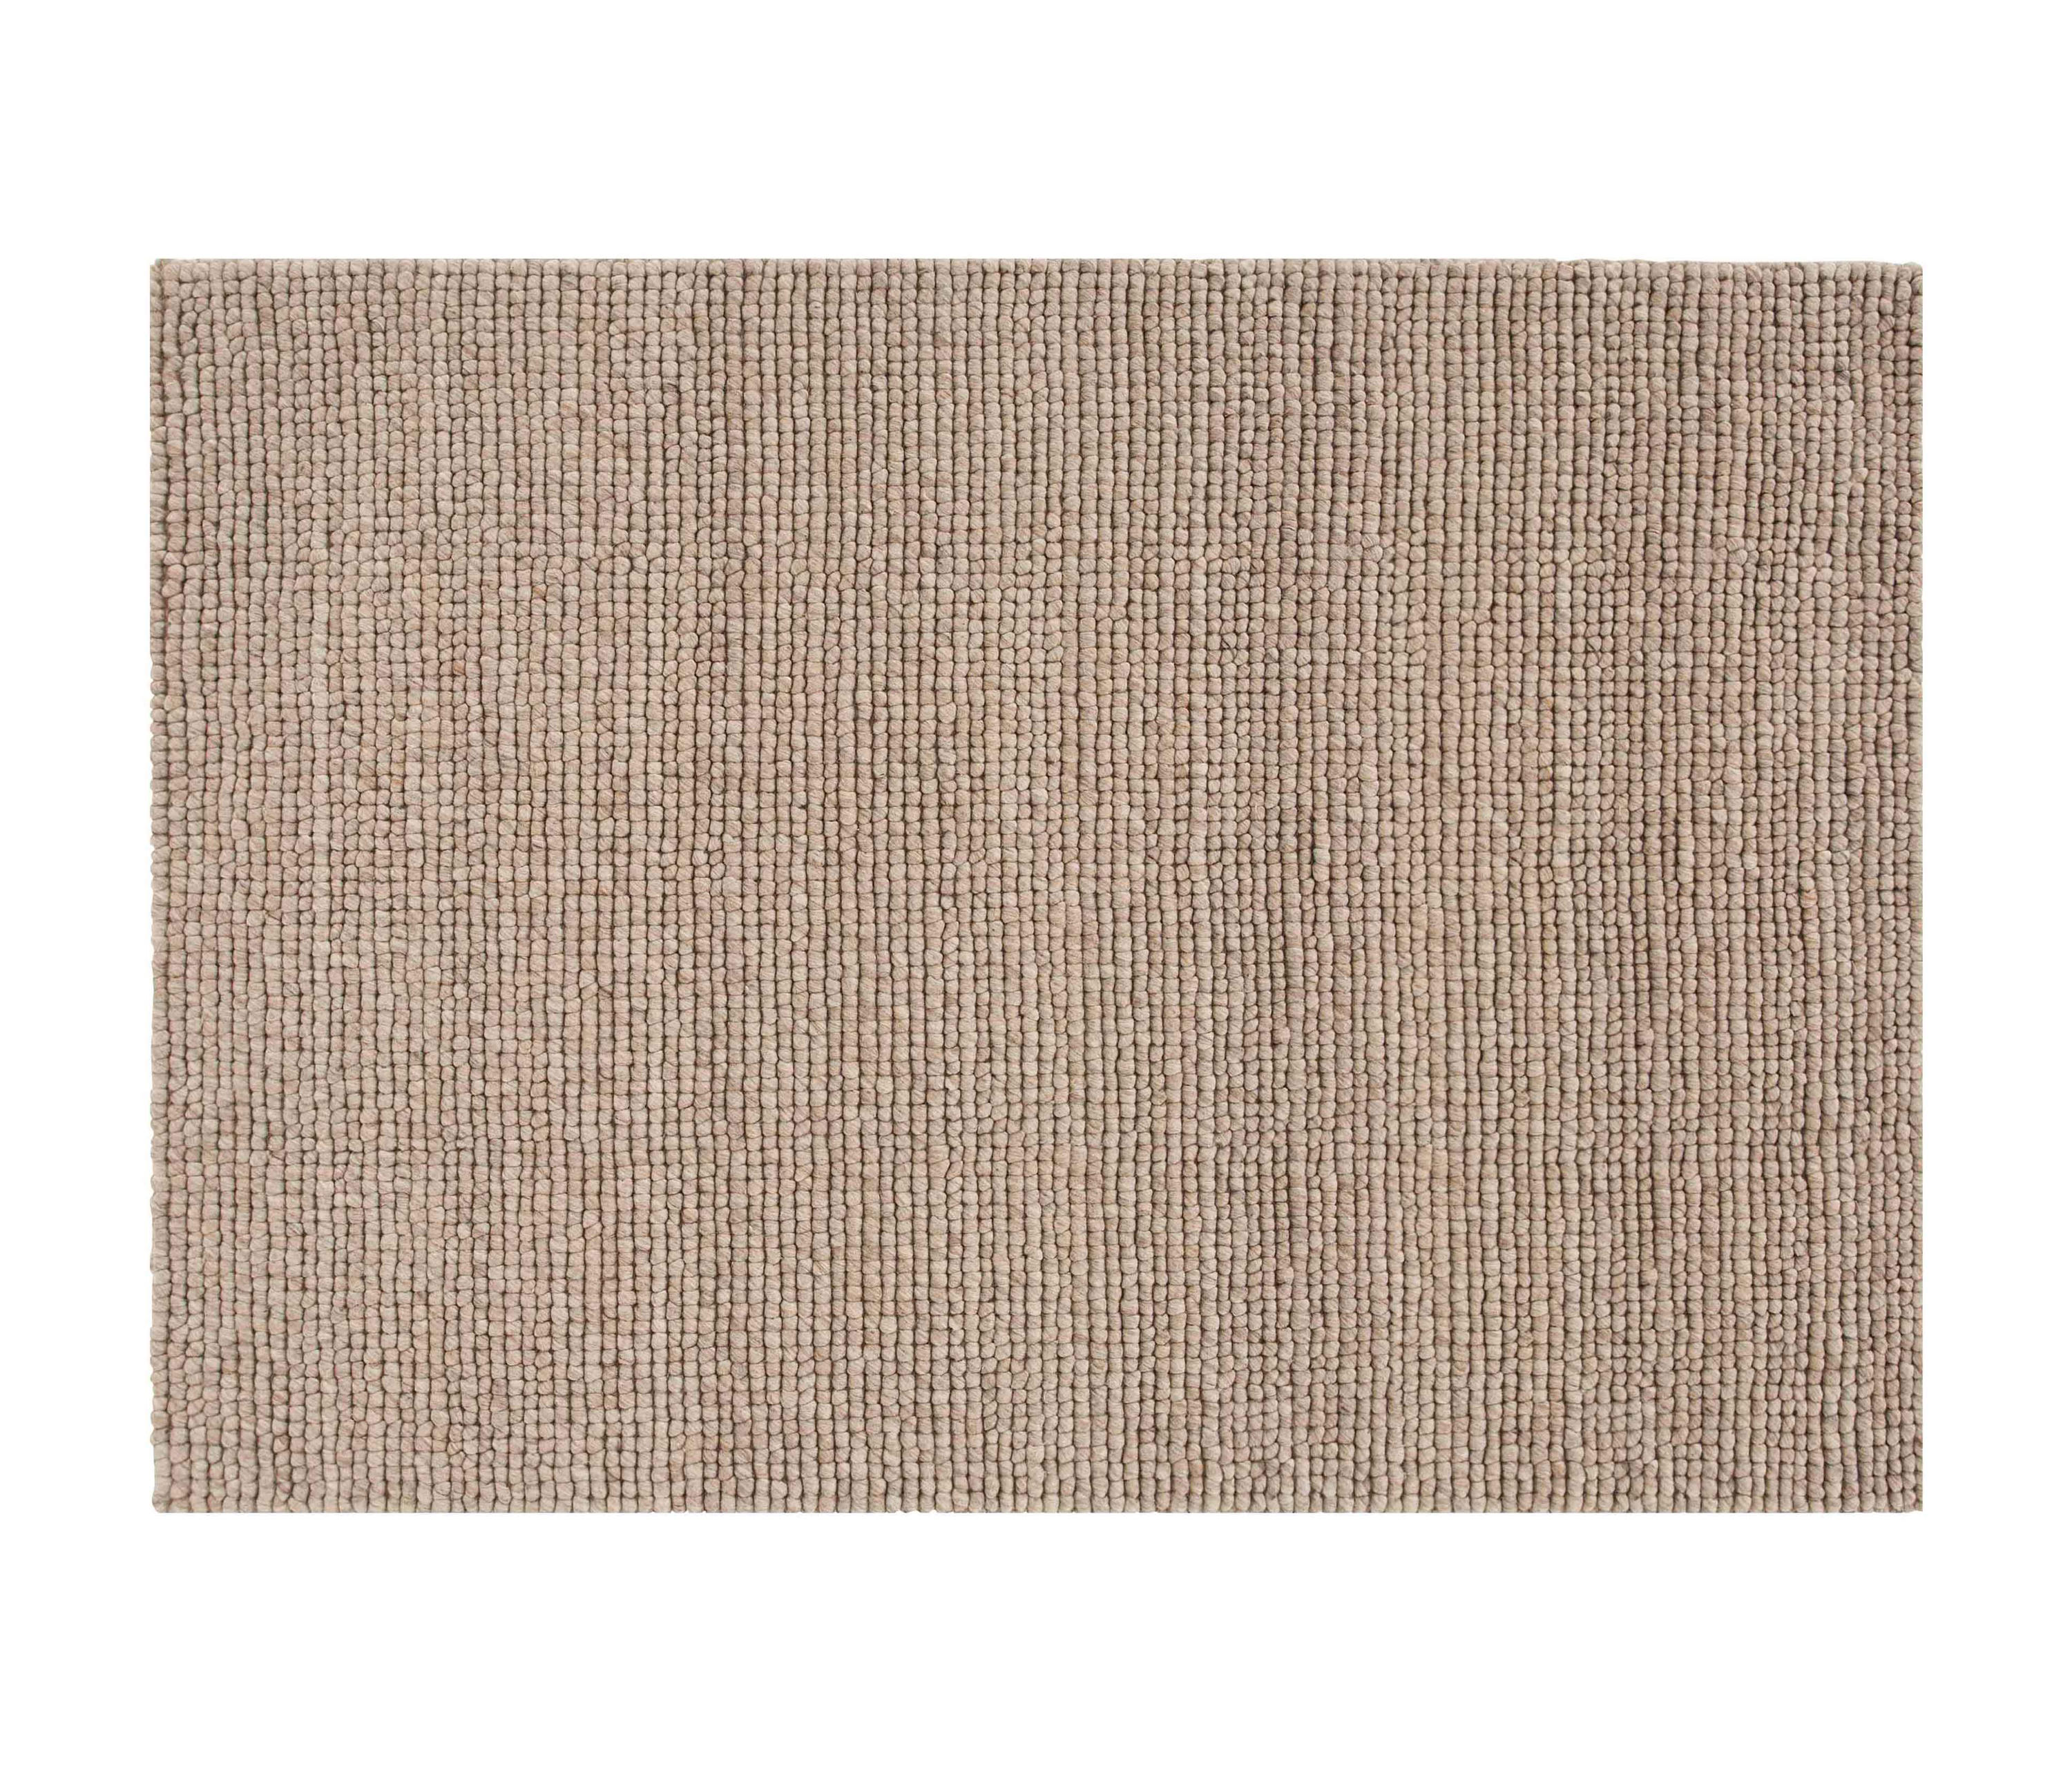 Hoot Rug Beige 1 Rugs From Gan Architonic